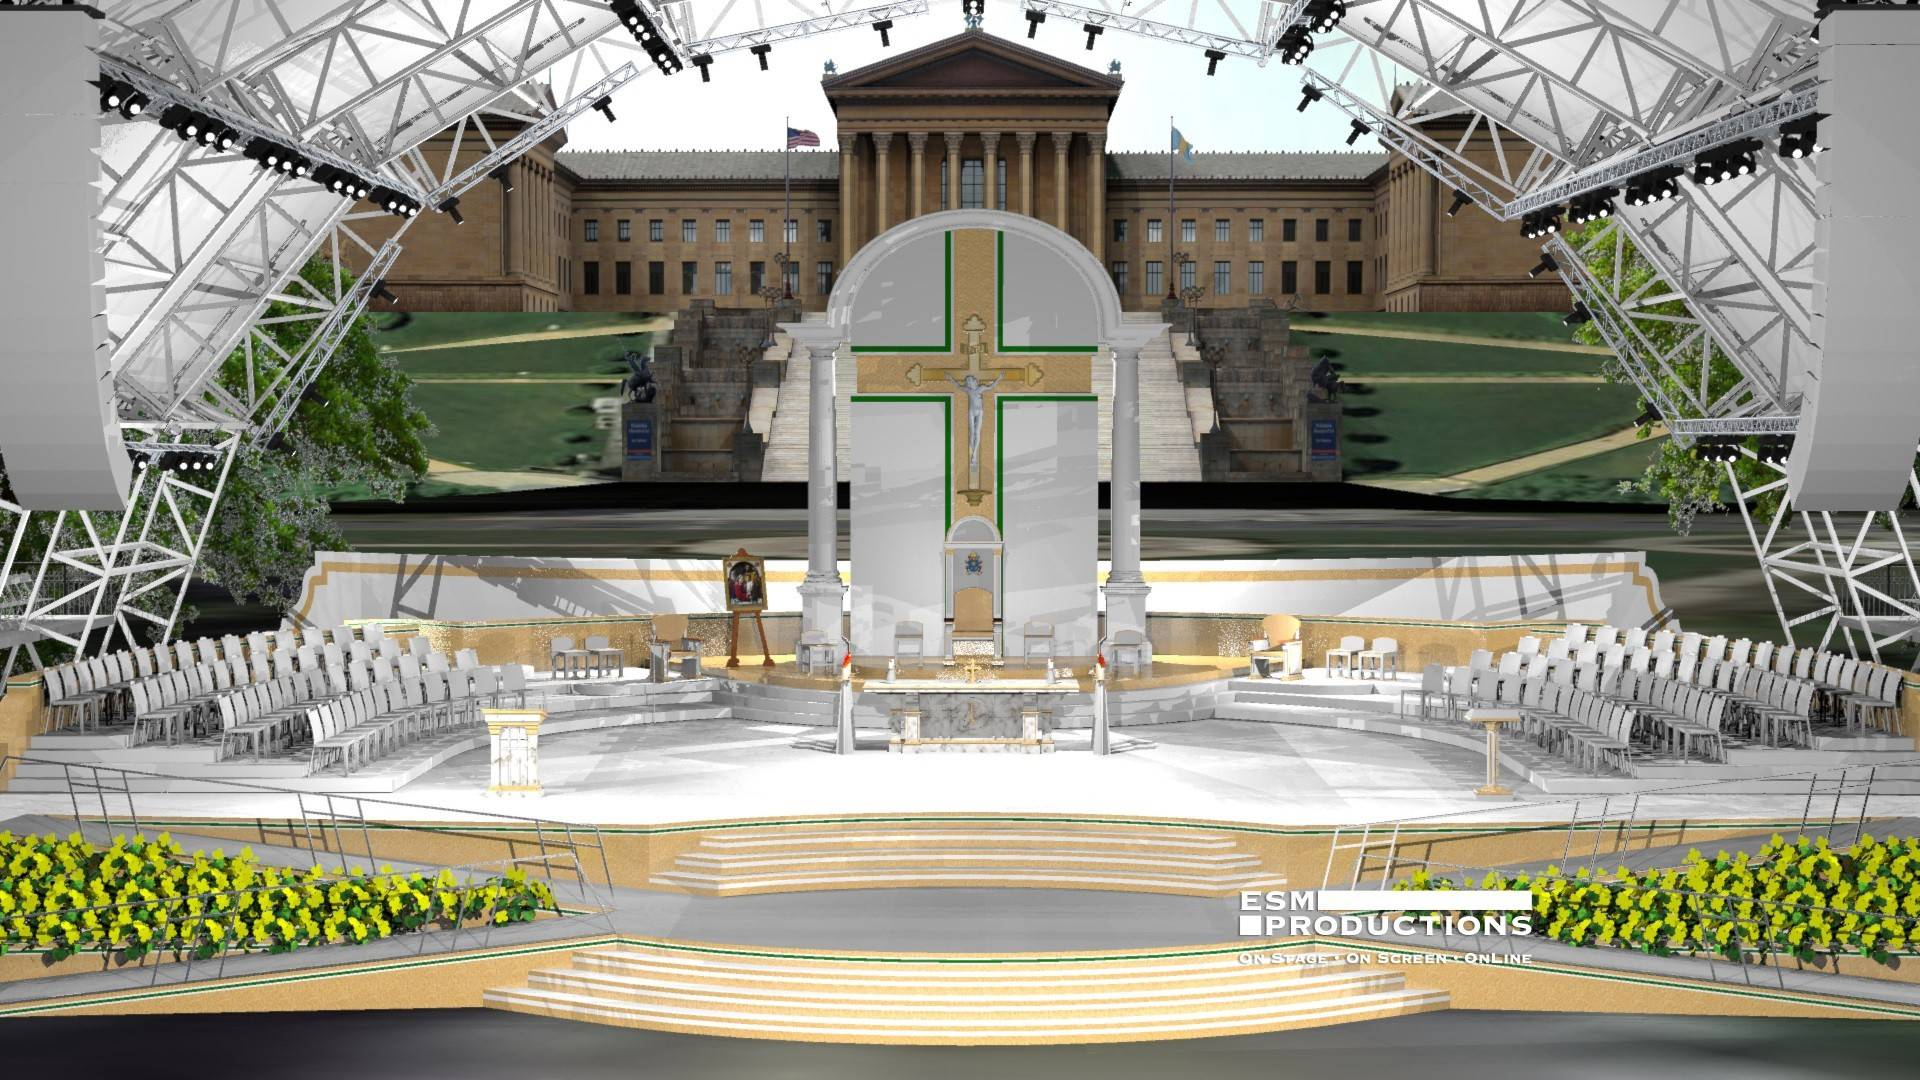 How a Glen Ellyn native ended up designing Pope Francis' Philadelphia sanctuary